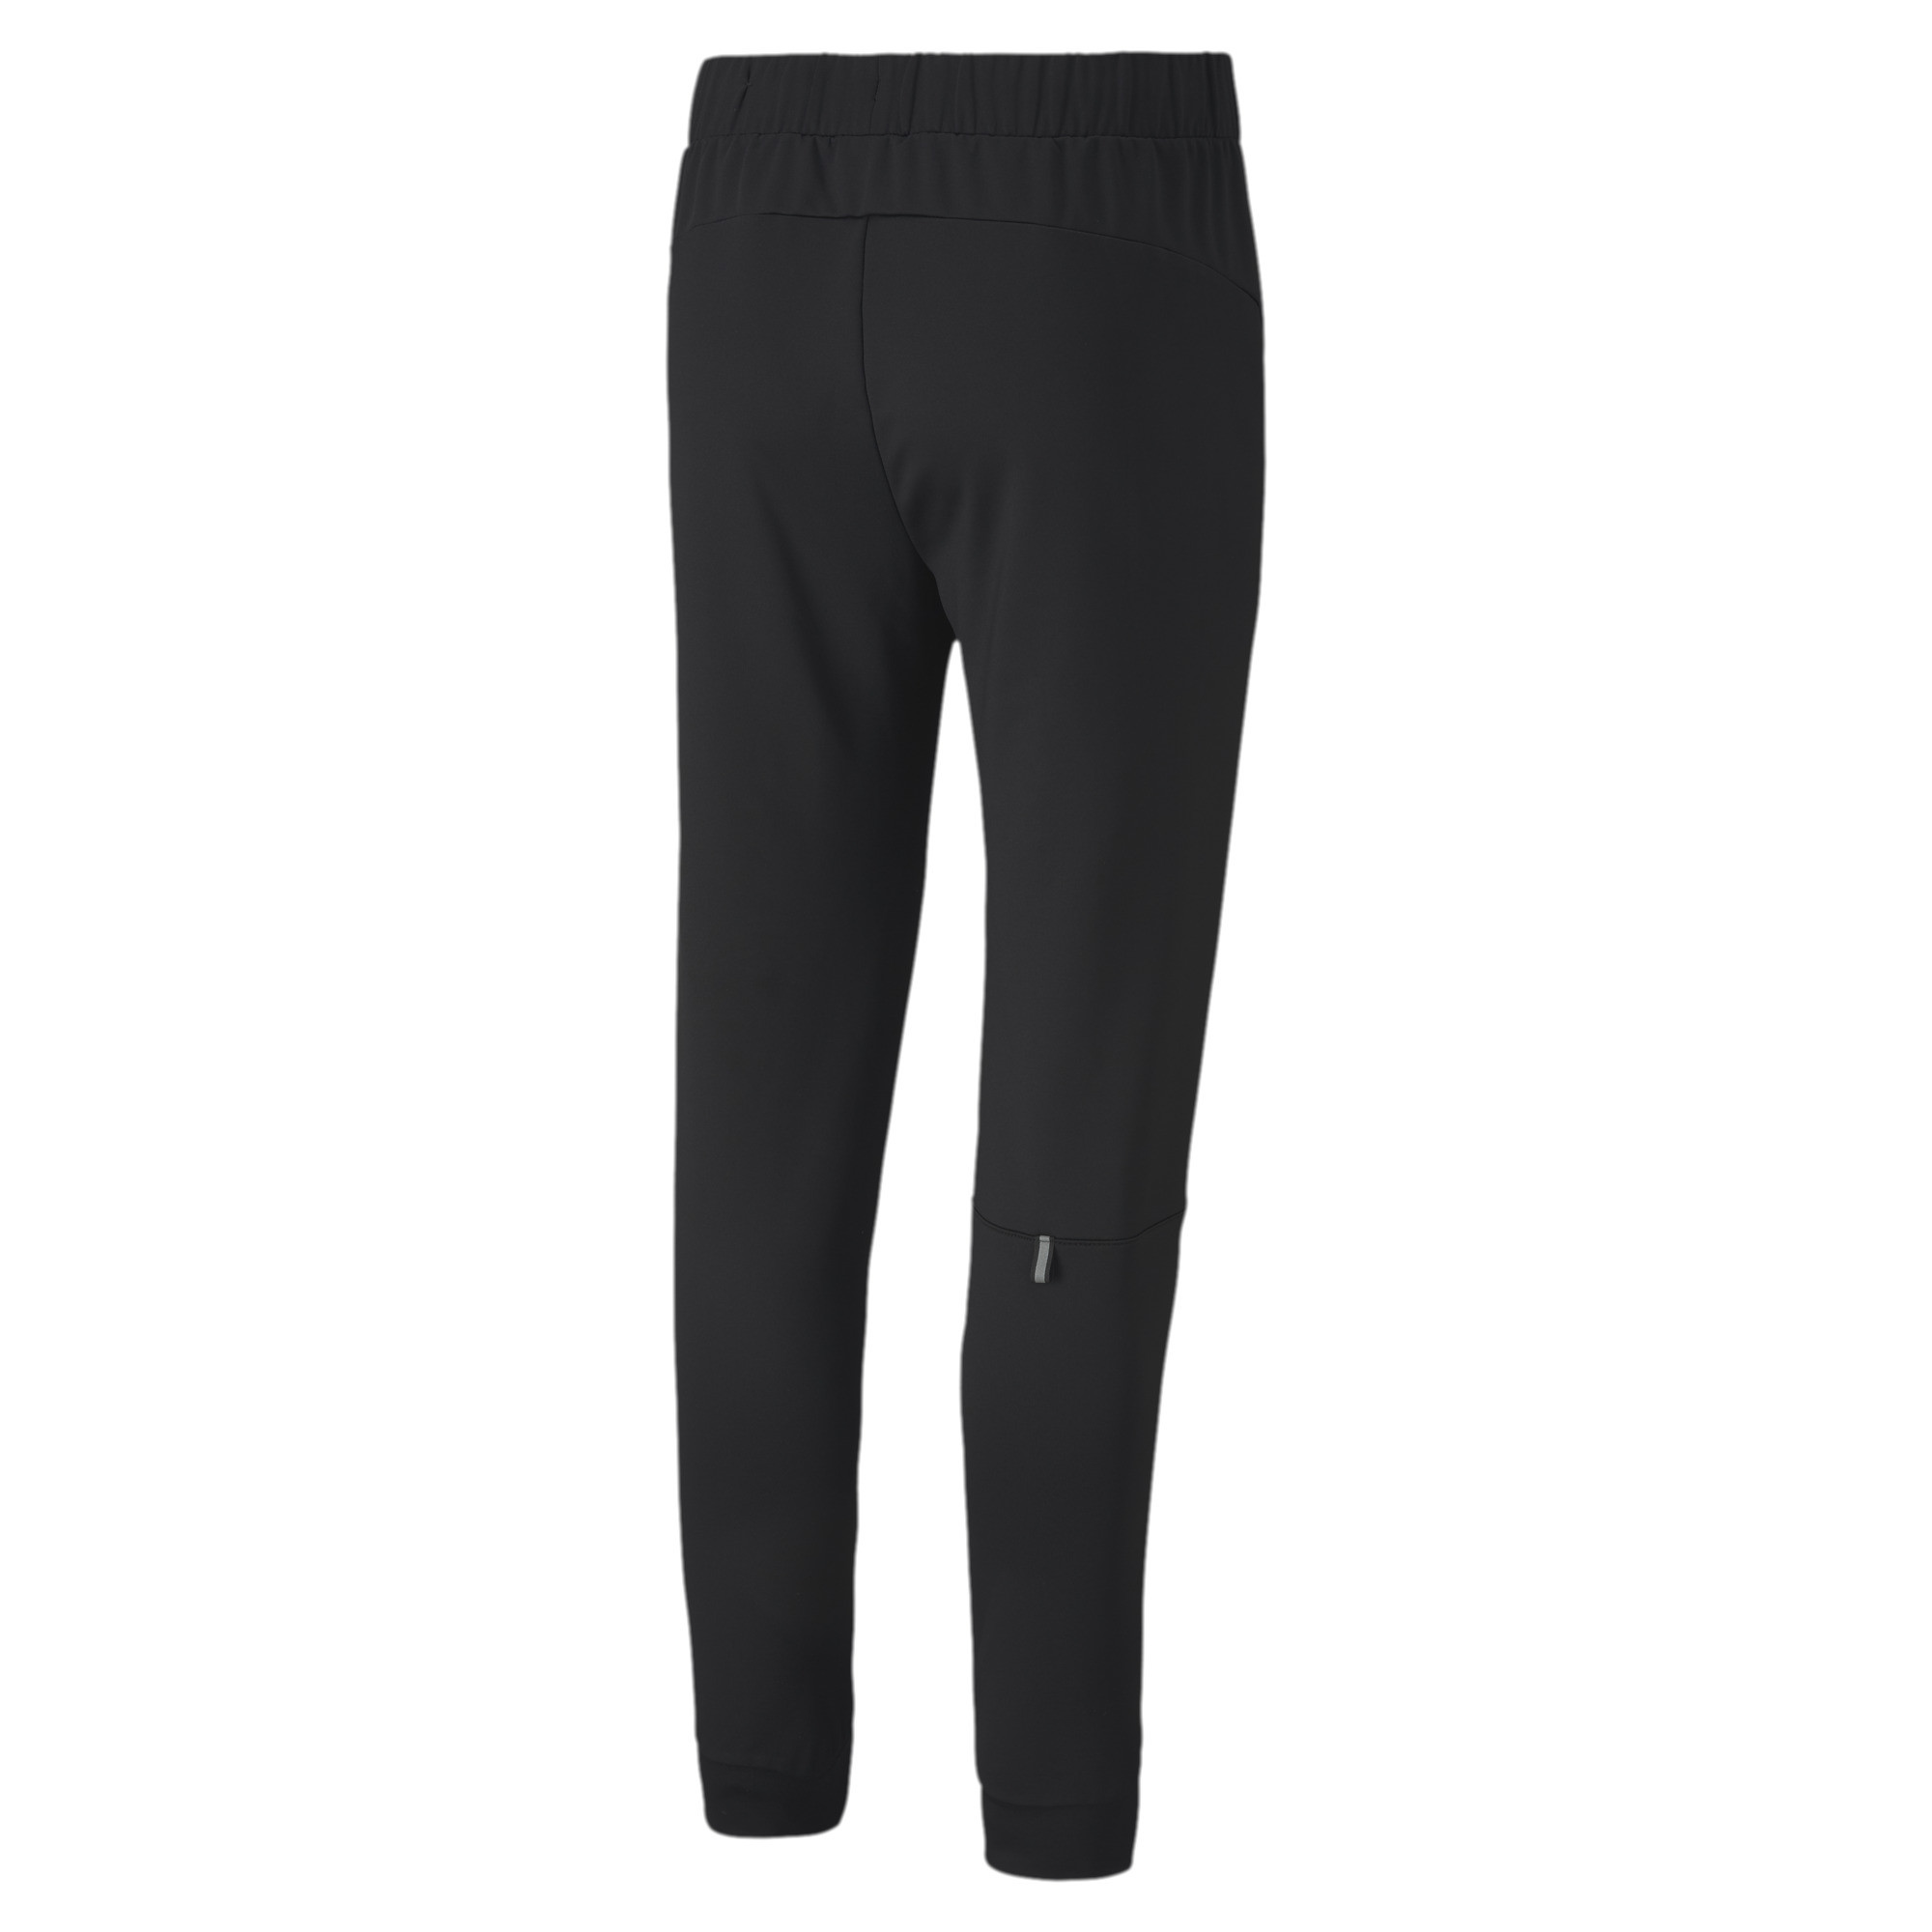 PUMA-RTG-Men-039-s-Knitted-Pants-Men-Knitted-Pants-Basics thumbnail 3